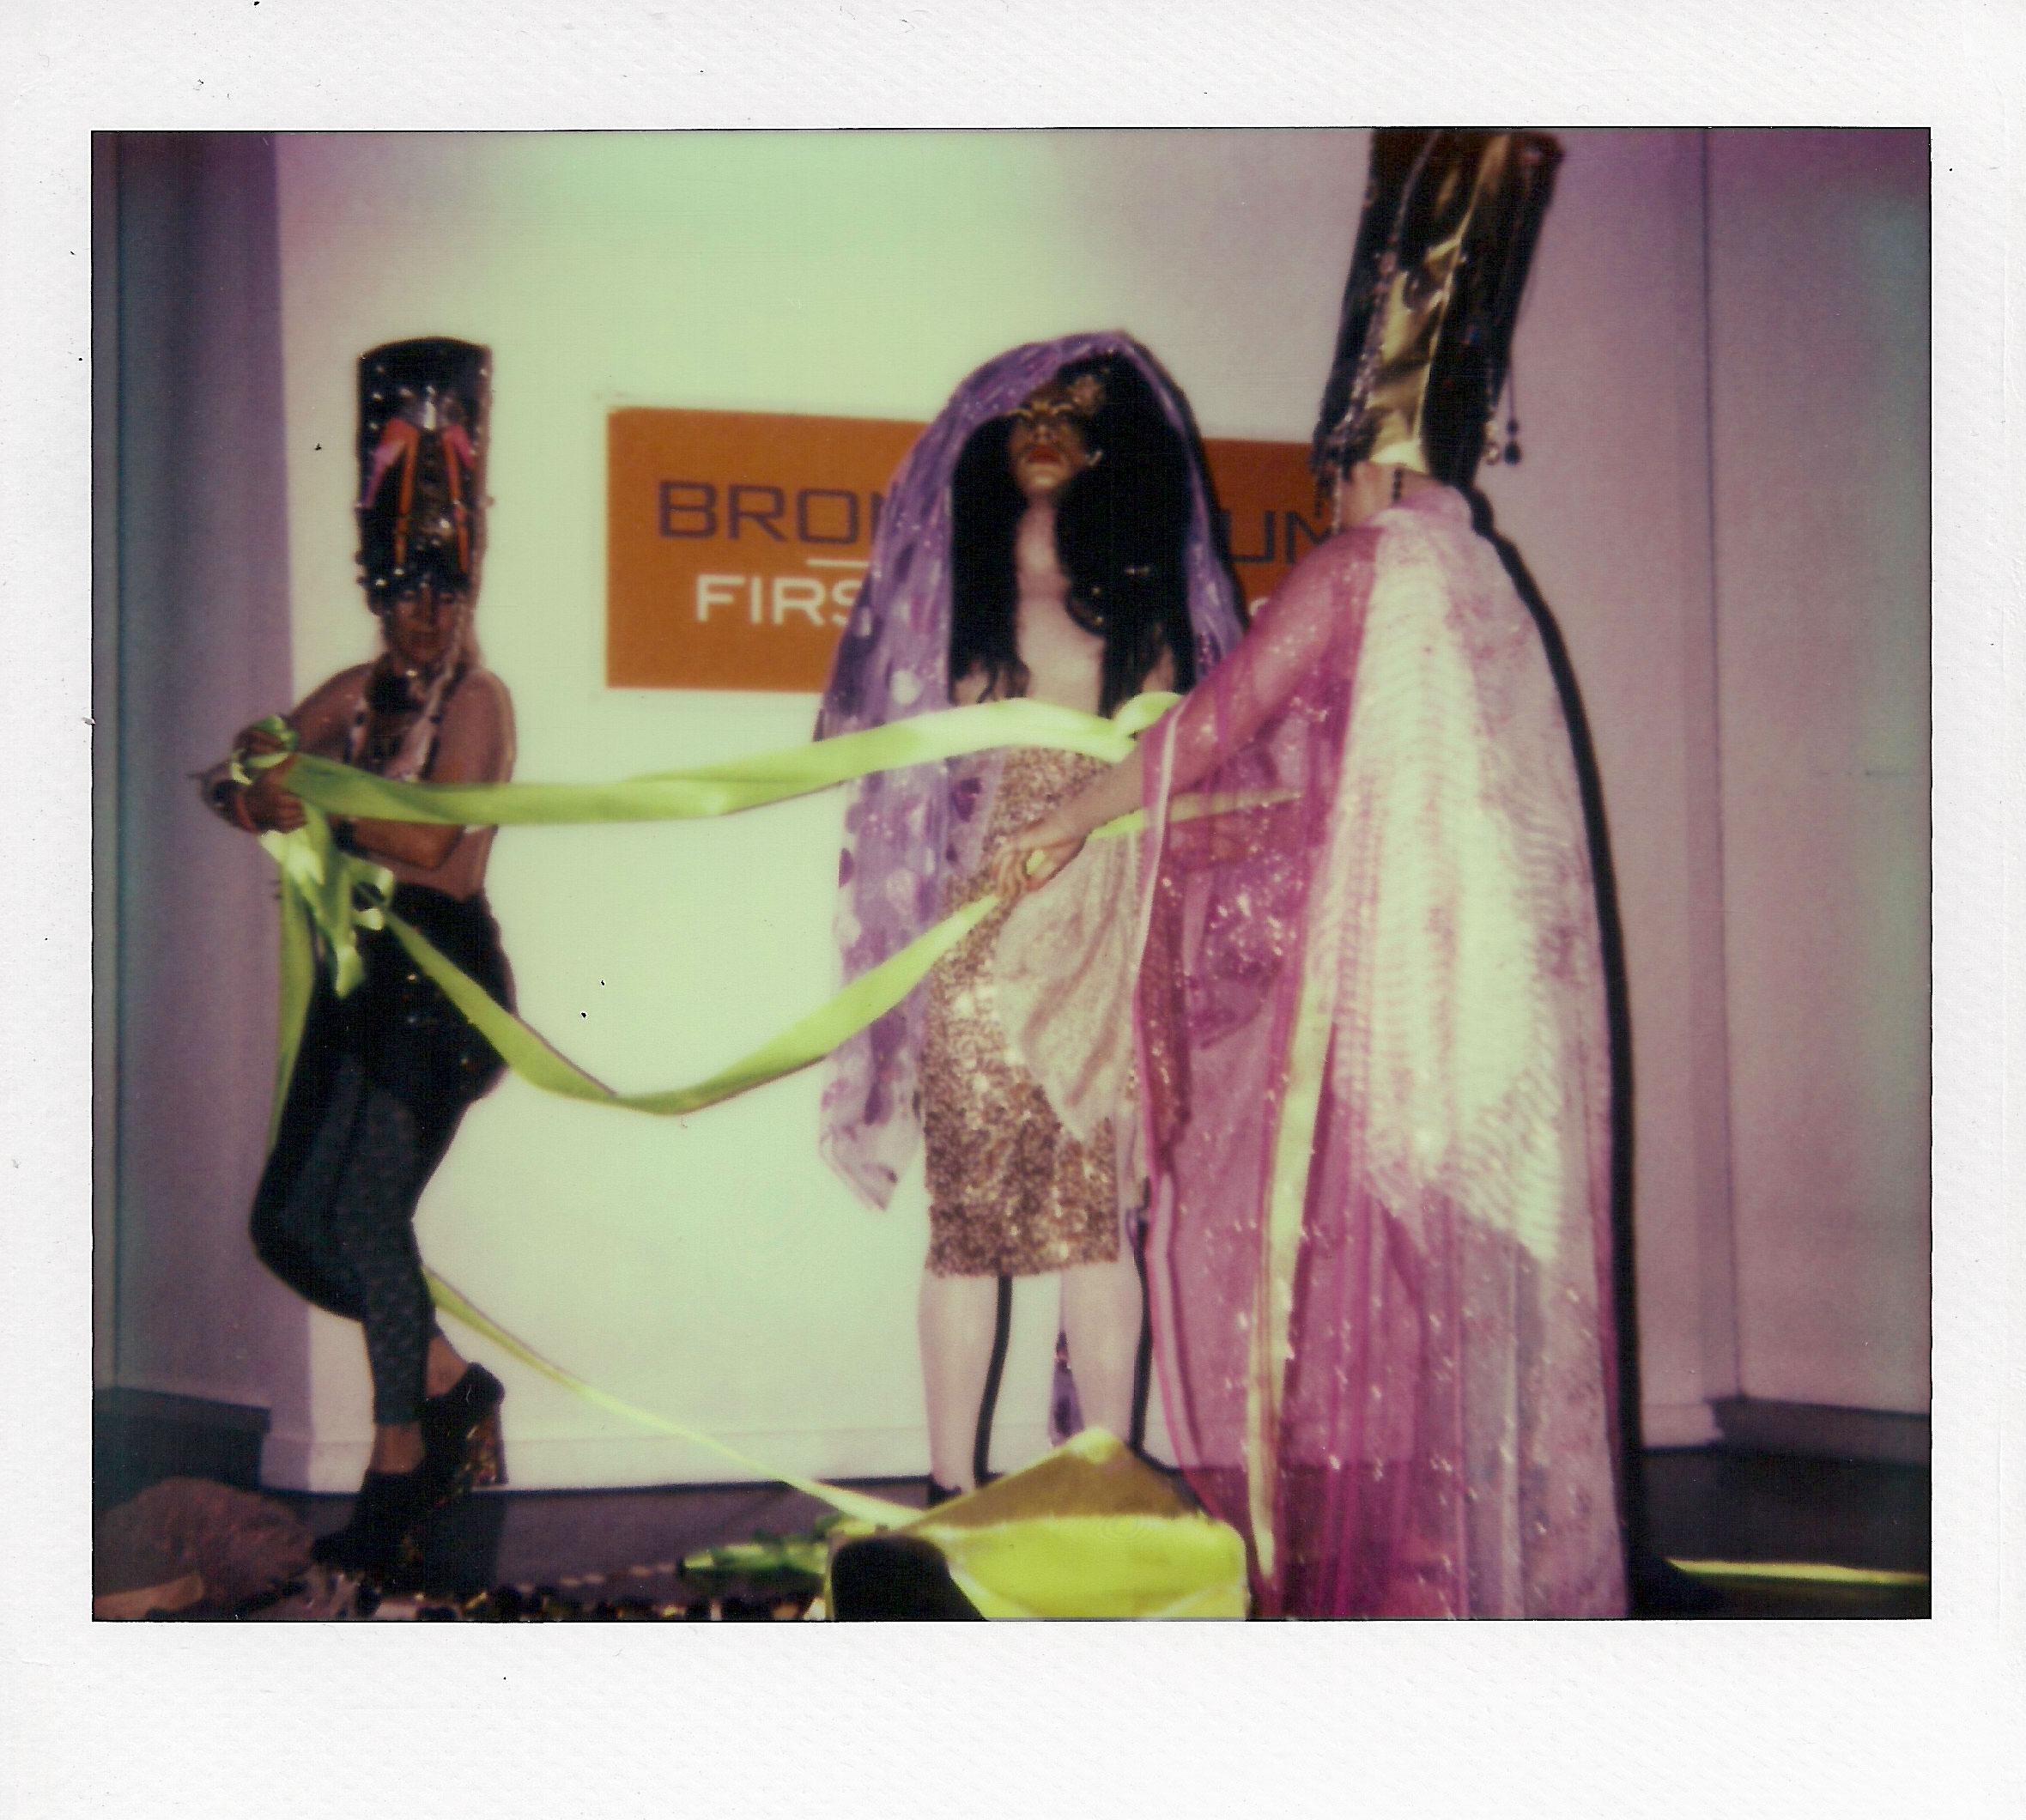 Go! Push Pops Queens Domin8tin performance at Bronx Museum photo credits to Marie Tomanova